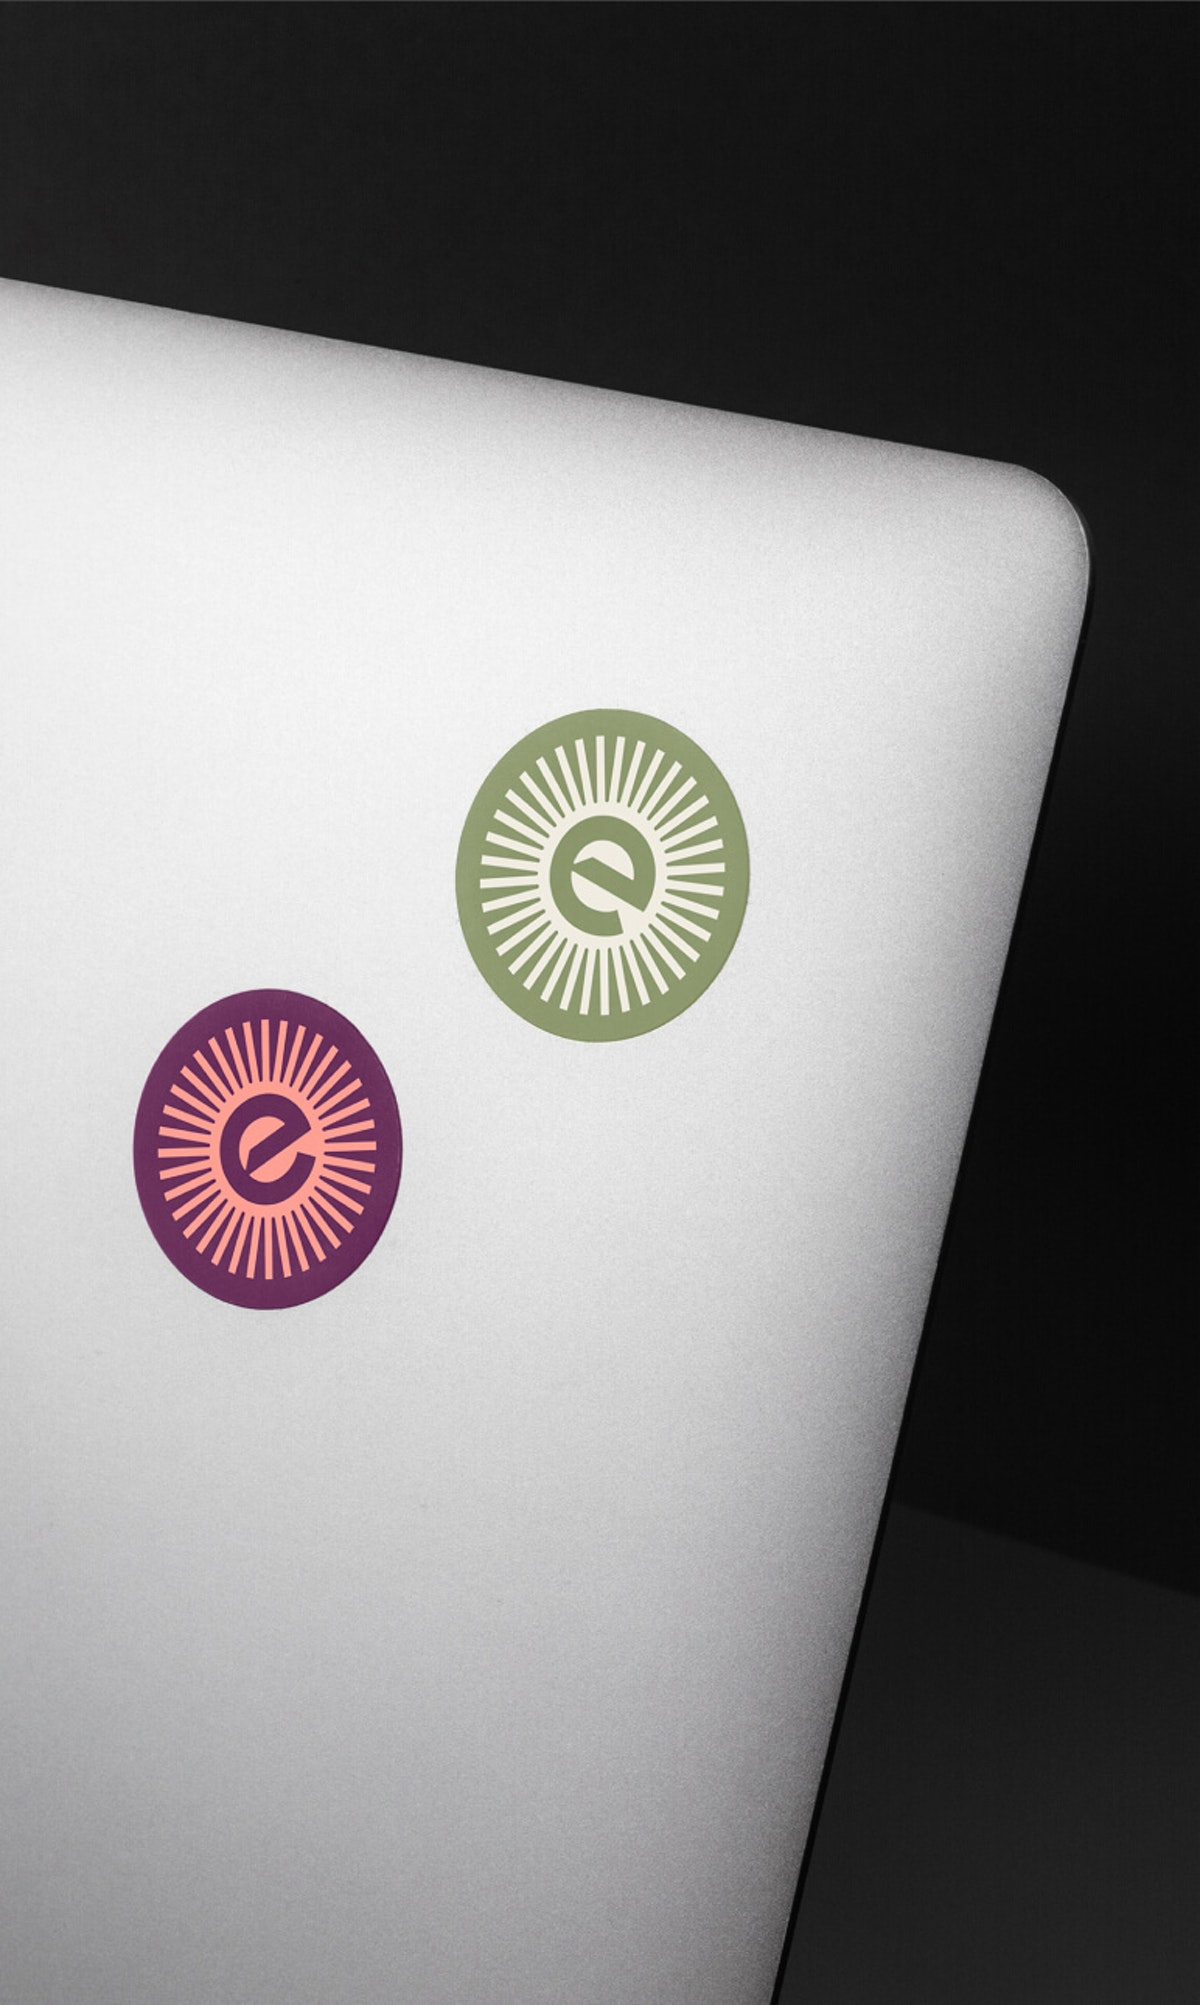 New Enerim stickers on a laptop